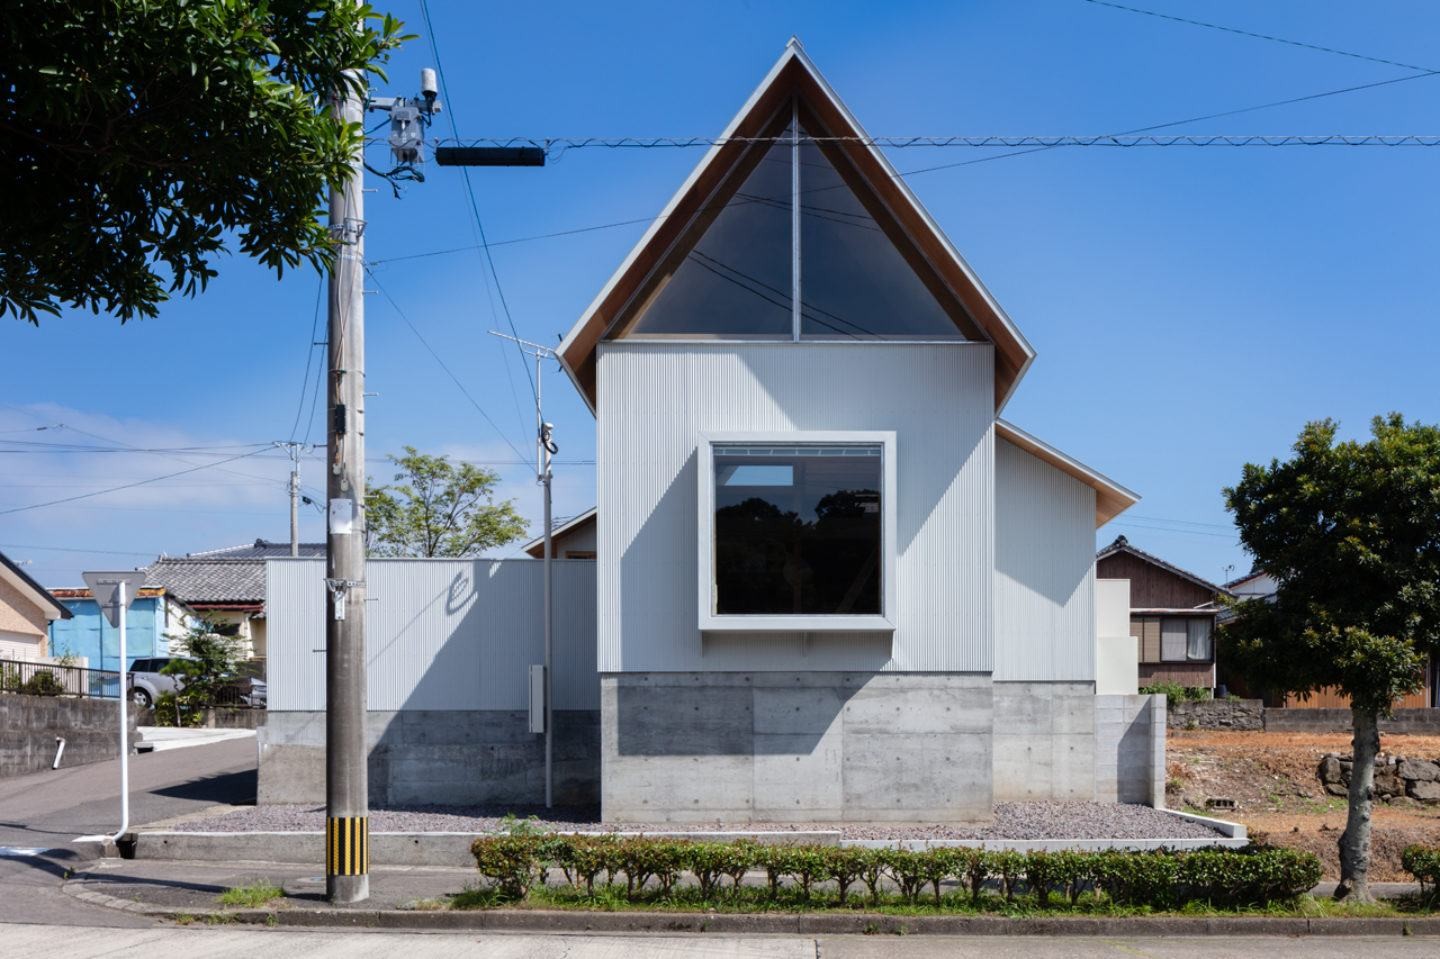 IGNANT-Architecture-YN-Architects-Masumitsu-House-3